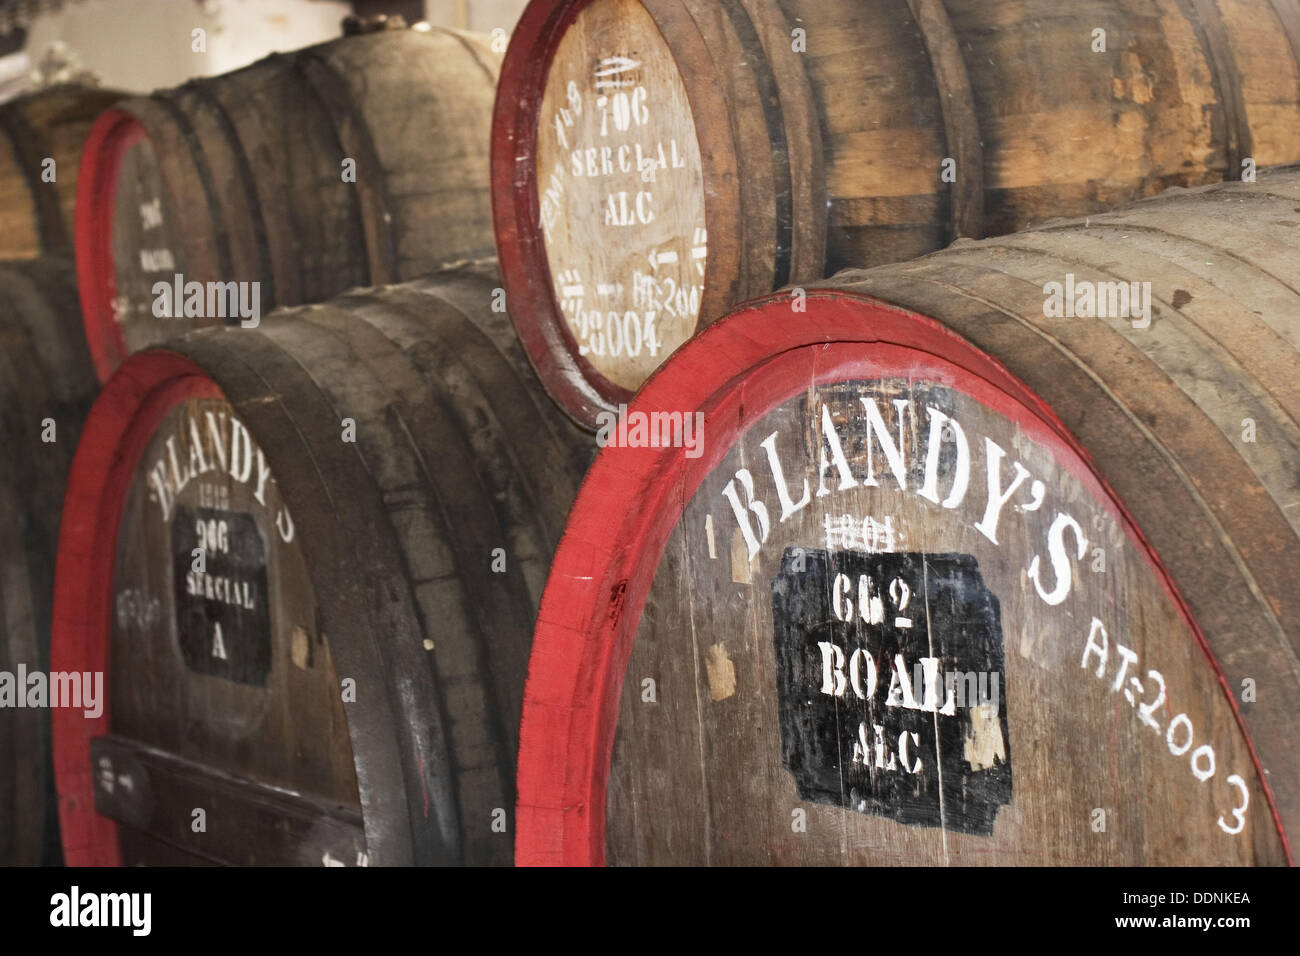 Madeira Wine Company High Resolution Stock Photography And Images Alamy